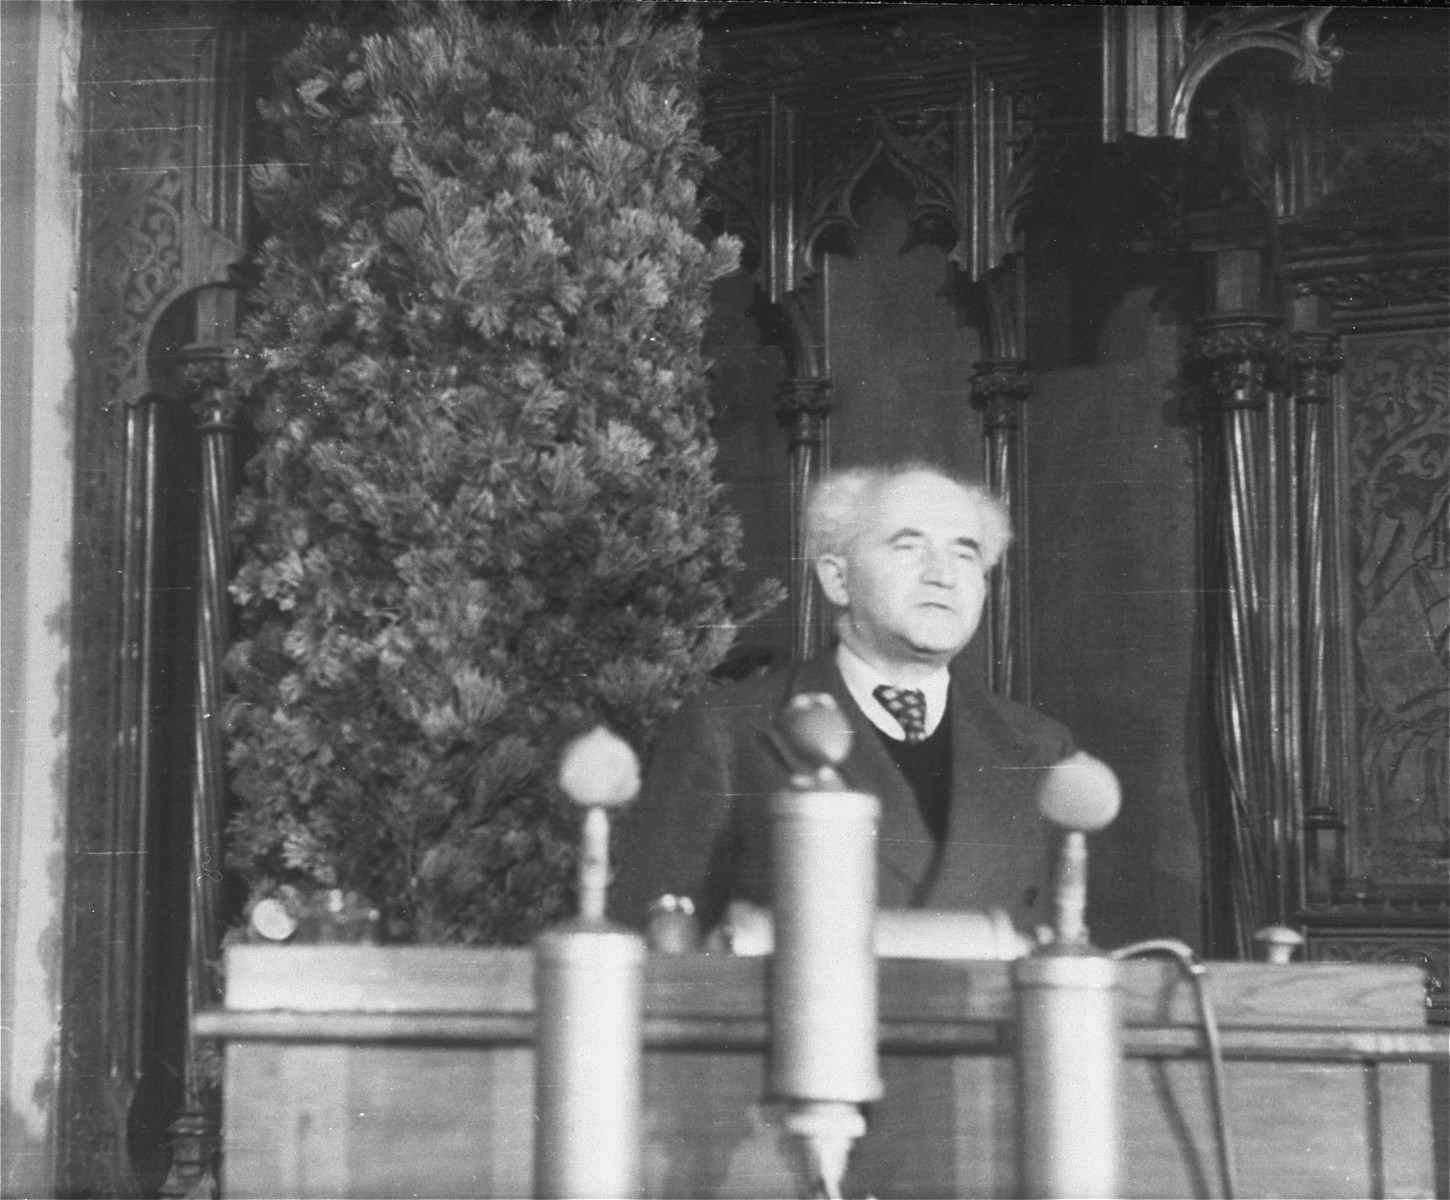 David Ben-Gurion addresses the Central Committee of Liberated Jews in the U.S. occupied zone at its first meeting in Munich.